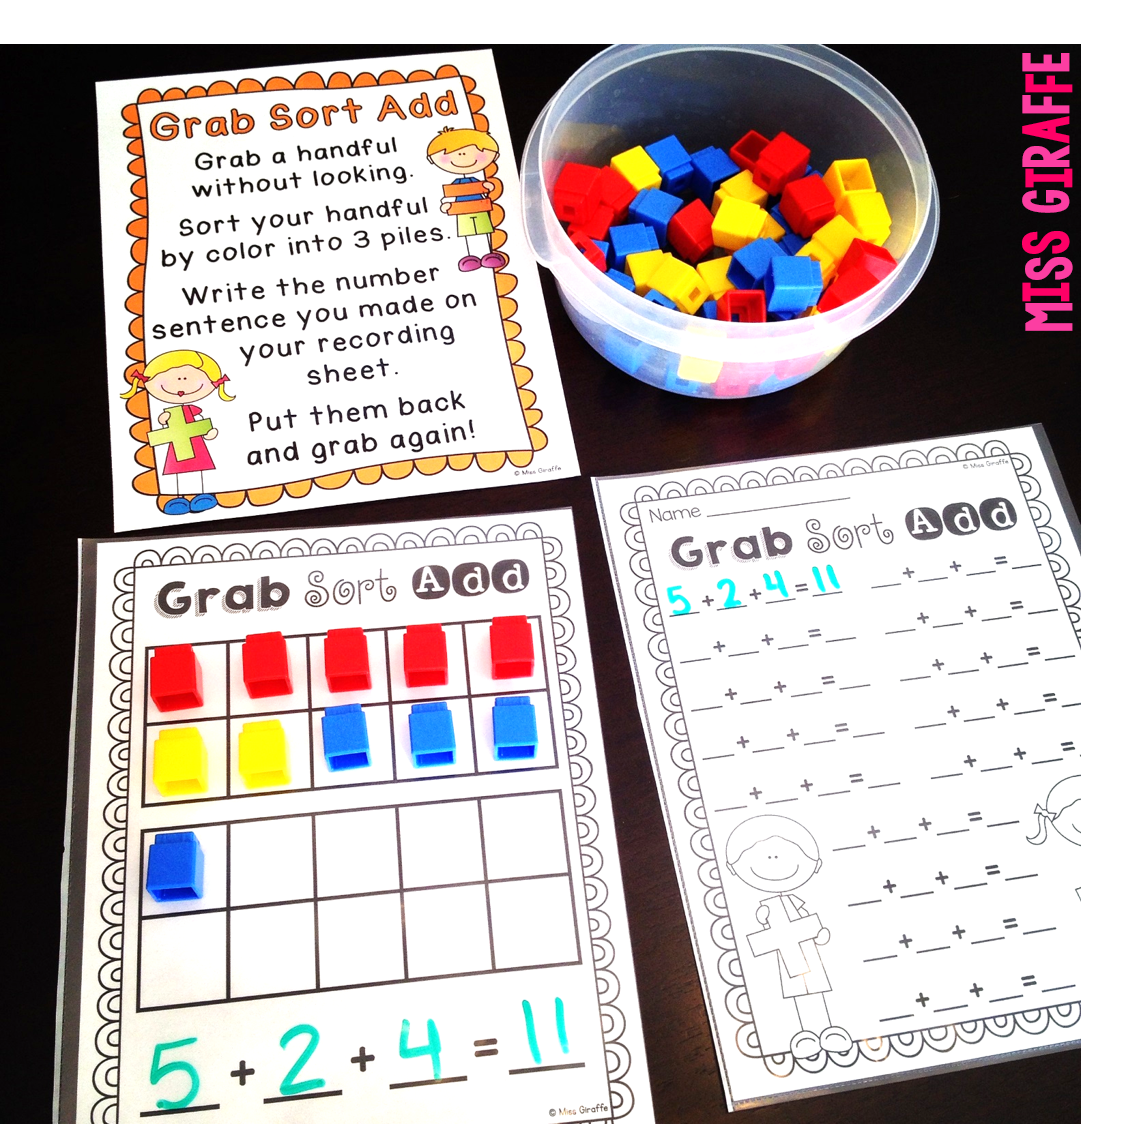 small resolution of Miss Giraffe's Class: Adding 3 Numbers